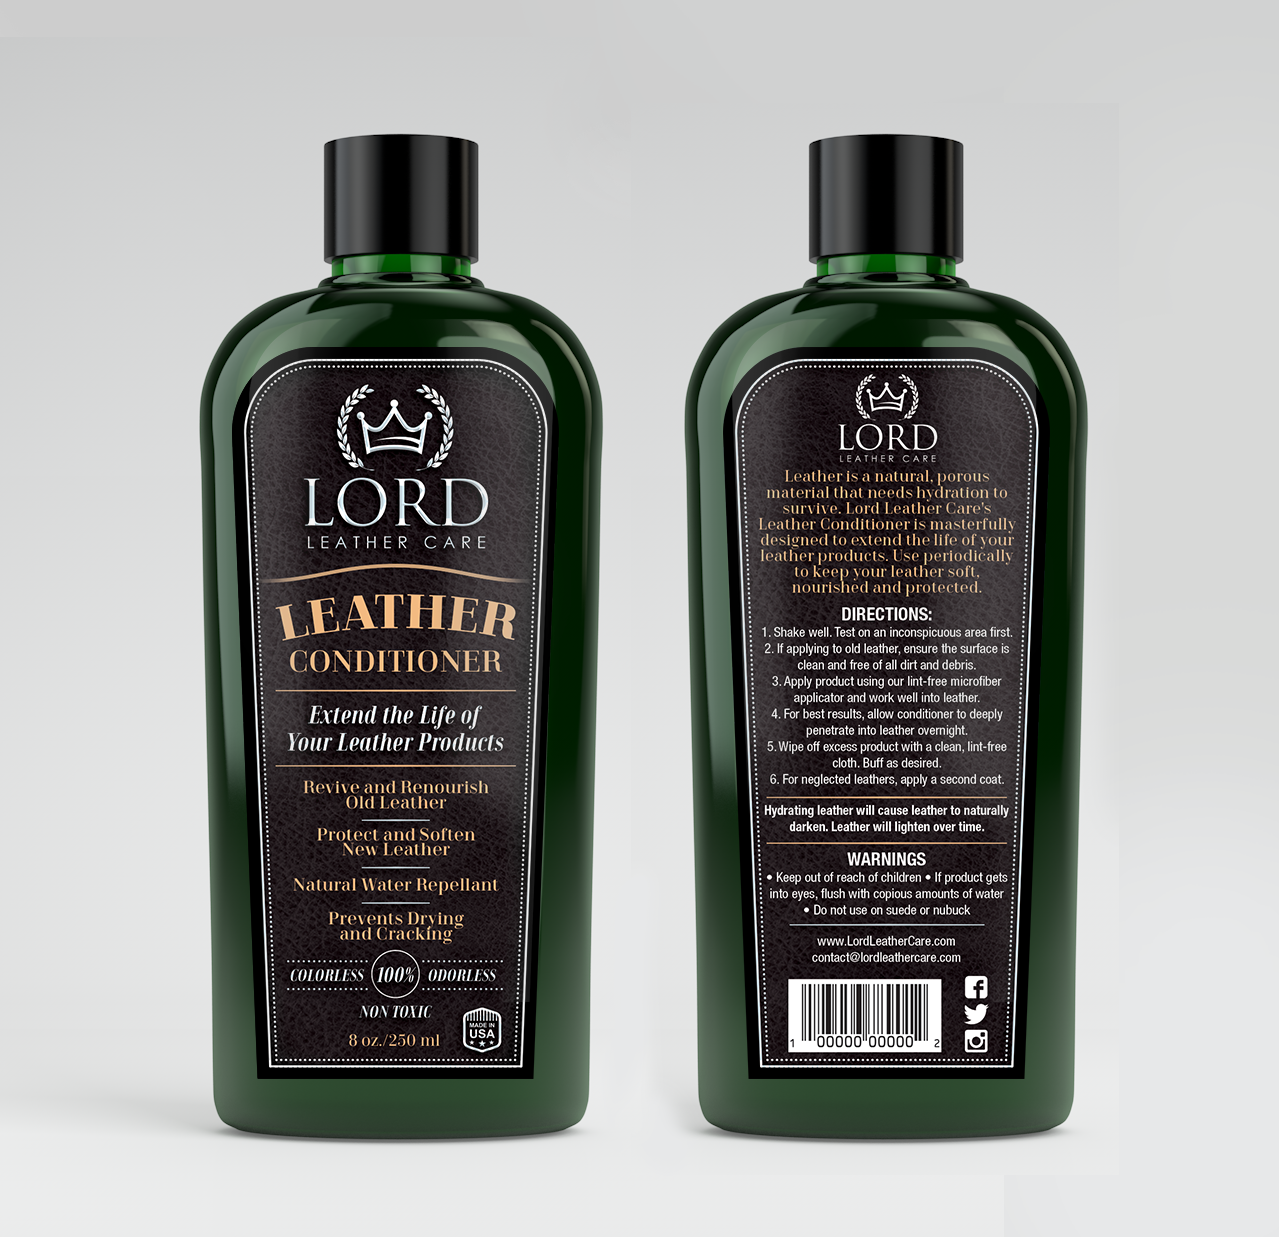 Create a modern and luxurious label for our Leather Conditioner - all details included!